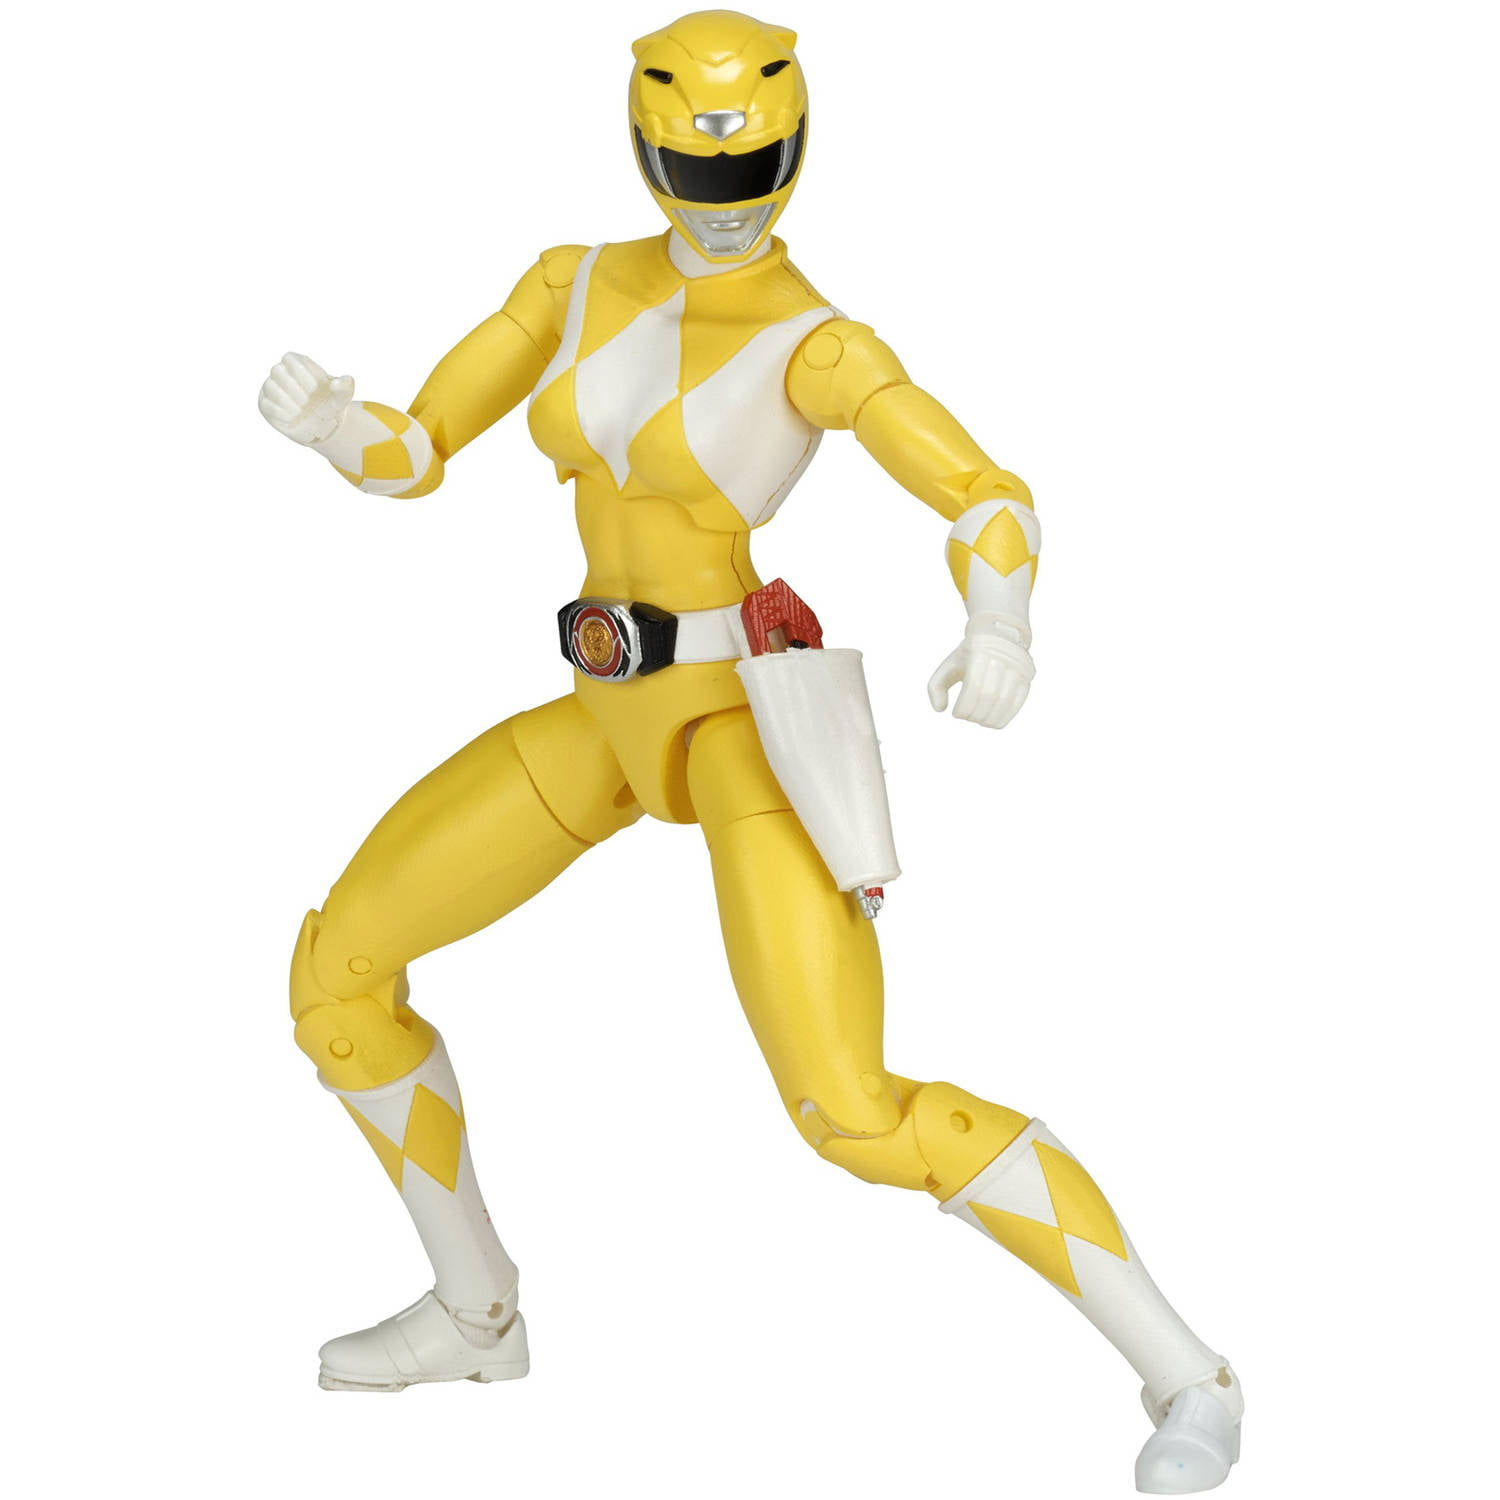 Power Rangers Legacy Mighty Morphin Yellow Ranger by Bandai America